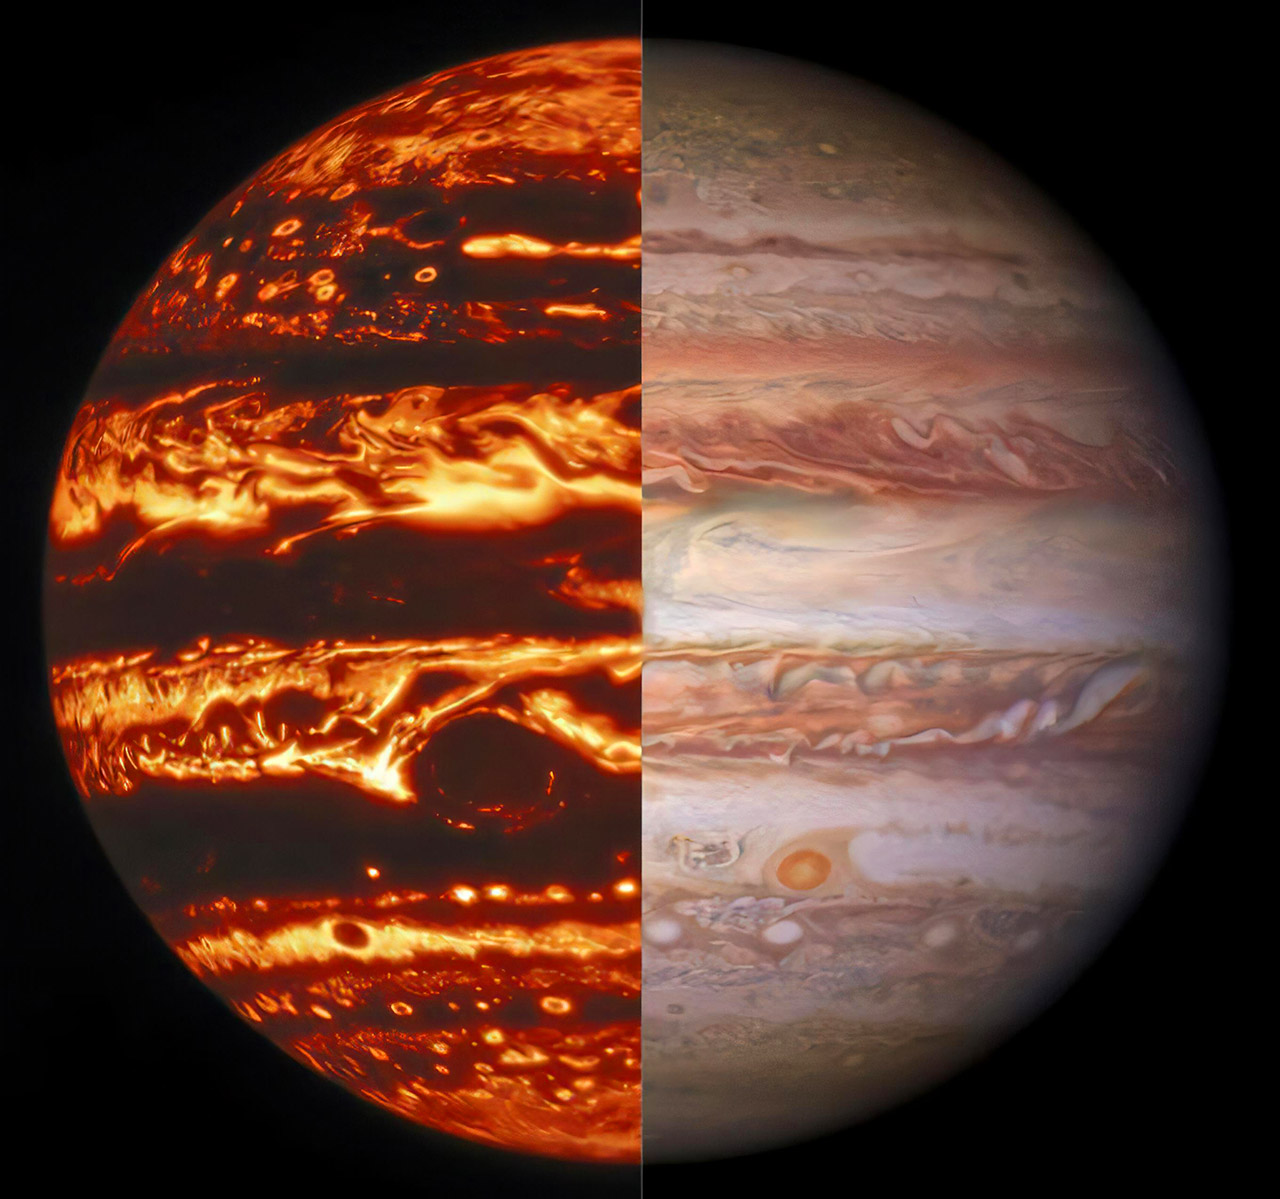 NASA Hubble Space Telescope Jupiter Great Red Spot Light